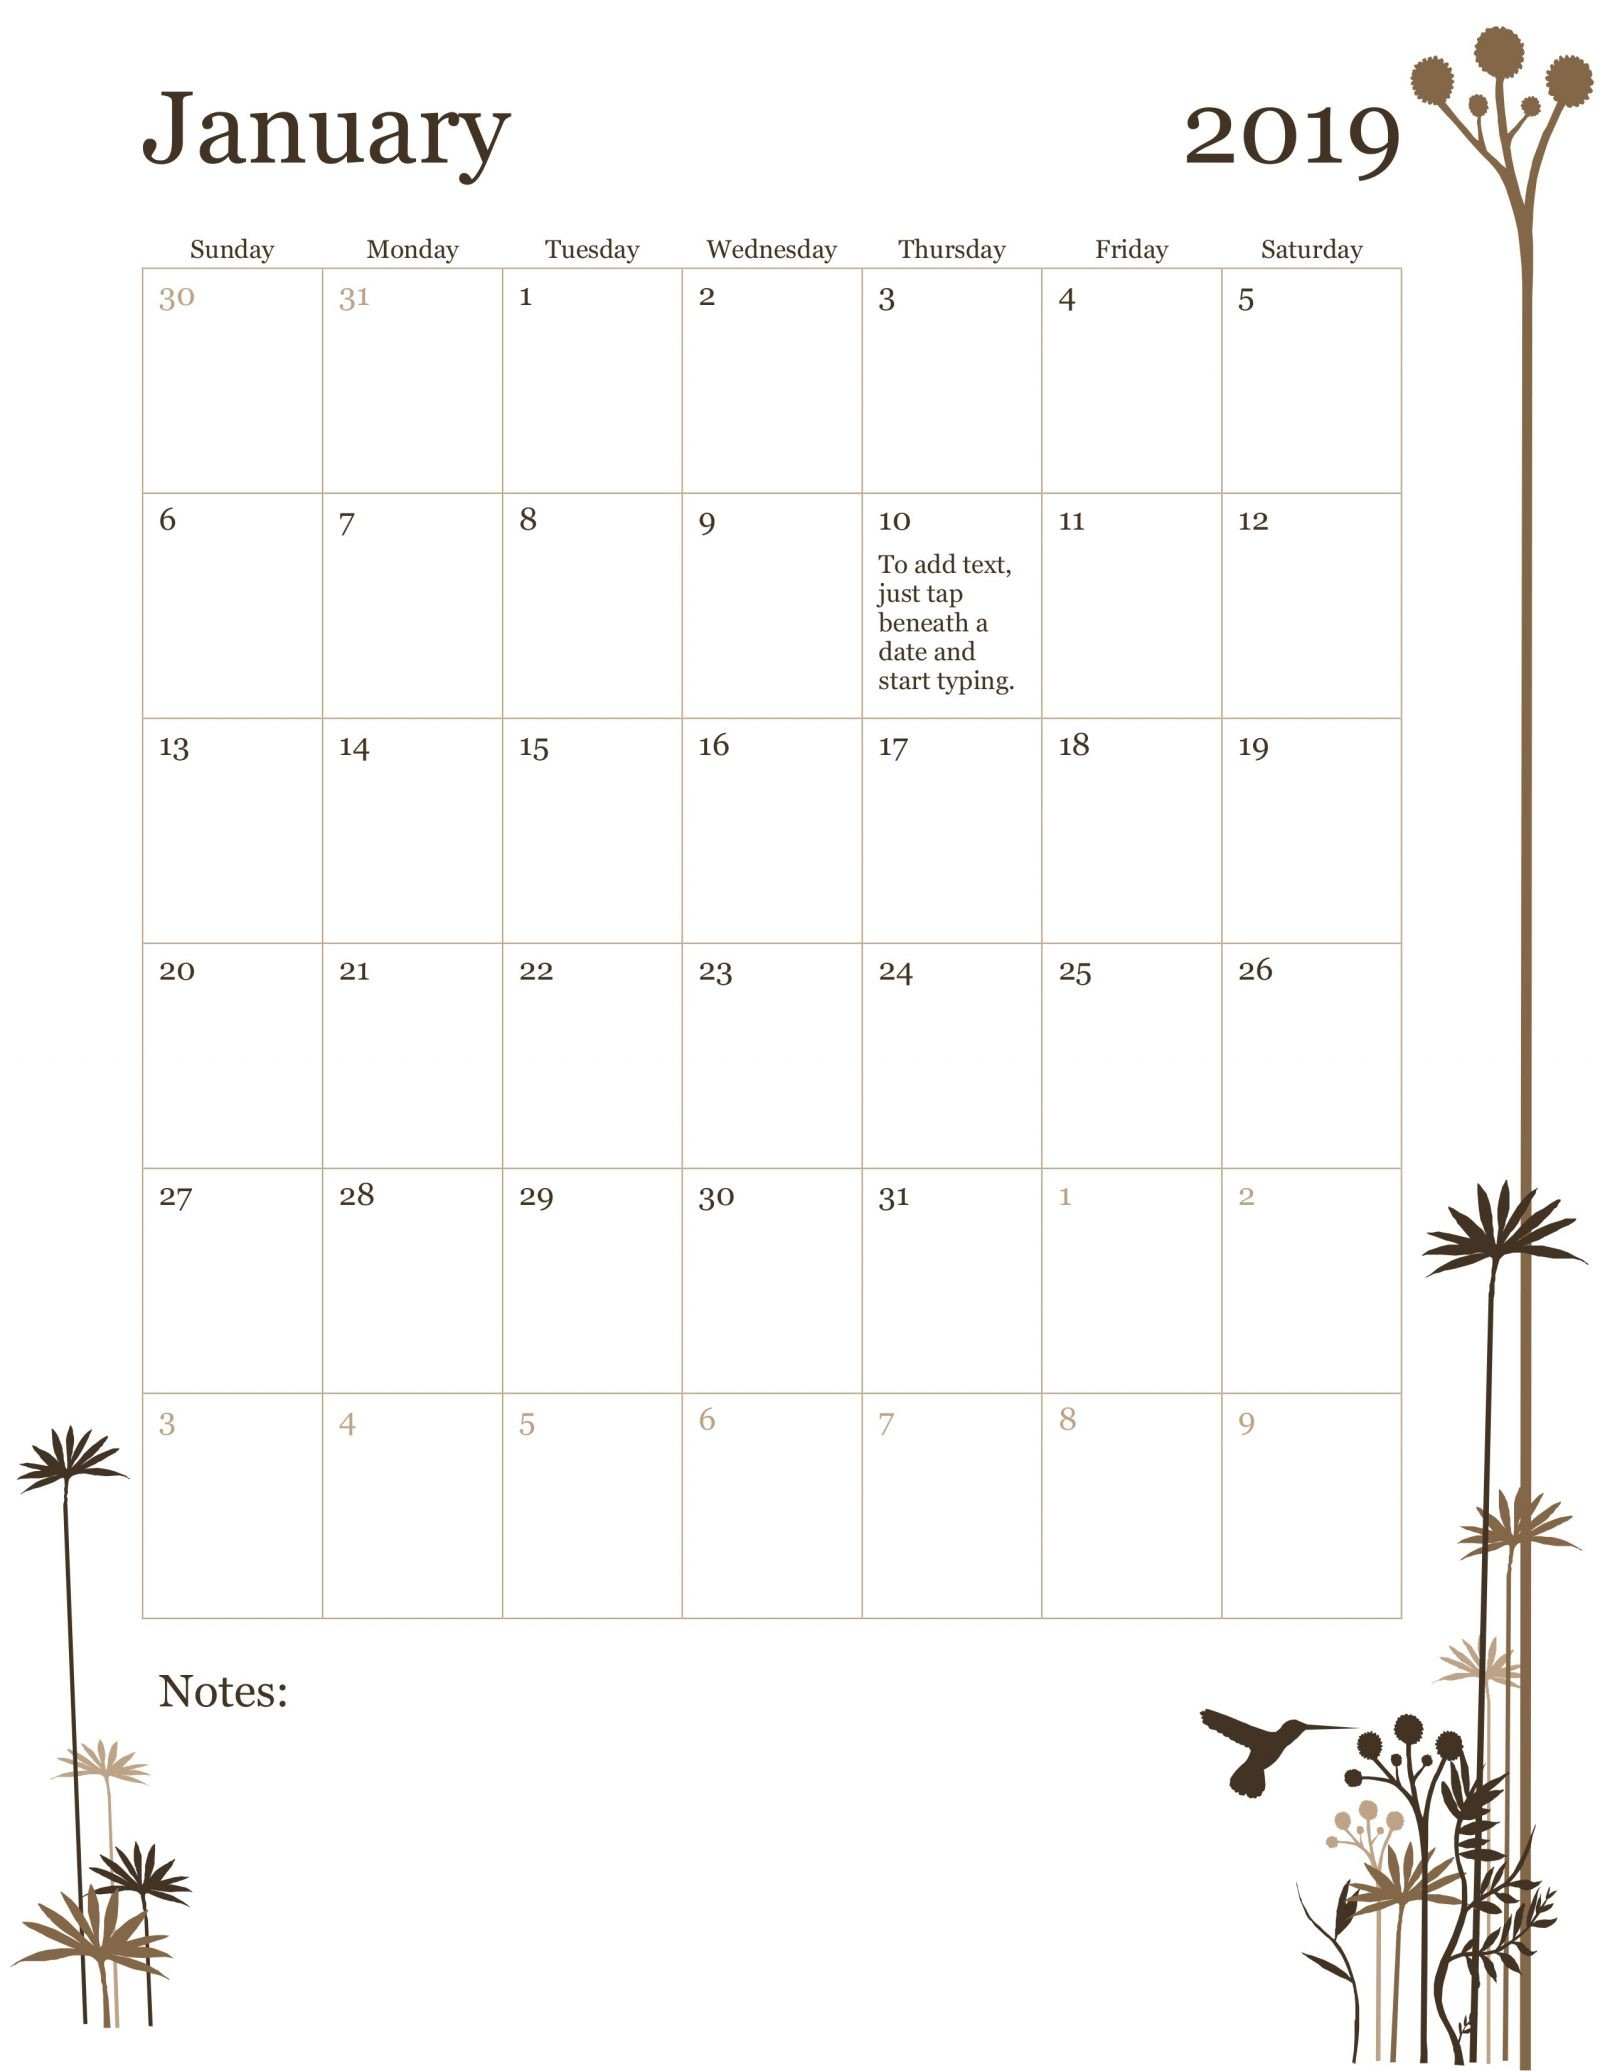 Calendario 2020 Jan Más Reciente Free Excel Calendar Templates Monthly Template Ic 2020 S Of Calendario 2020 Jan Más Populares Free Excel Calendar Templates Monthly Template Ic 2020 S